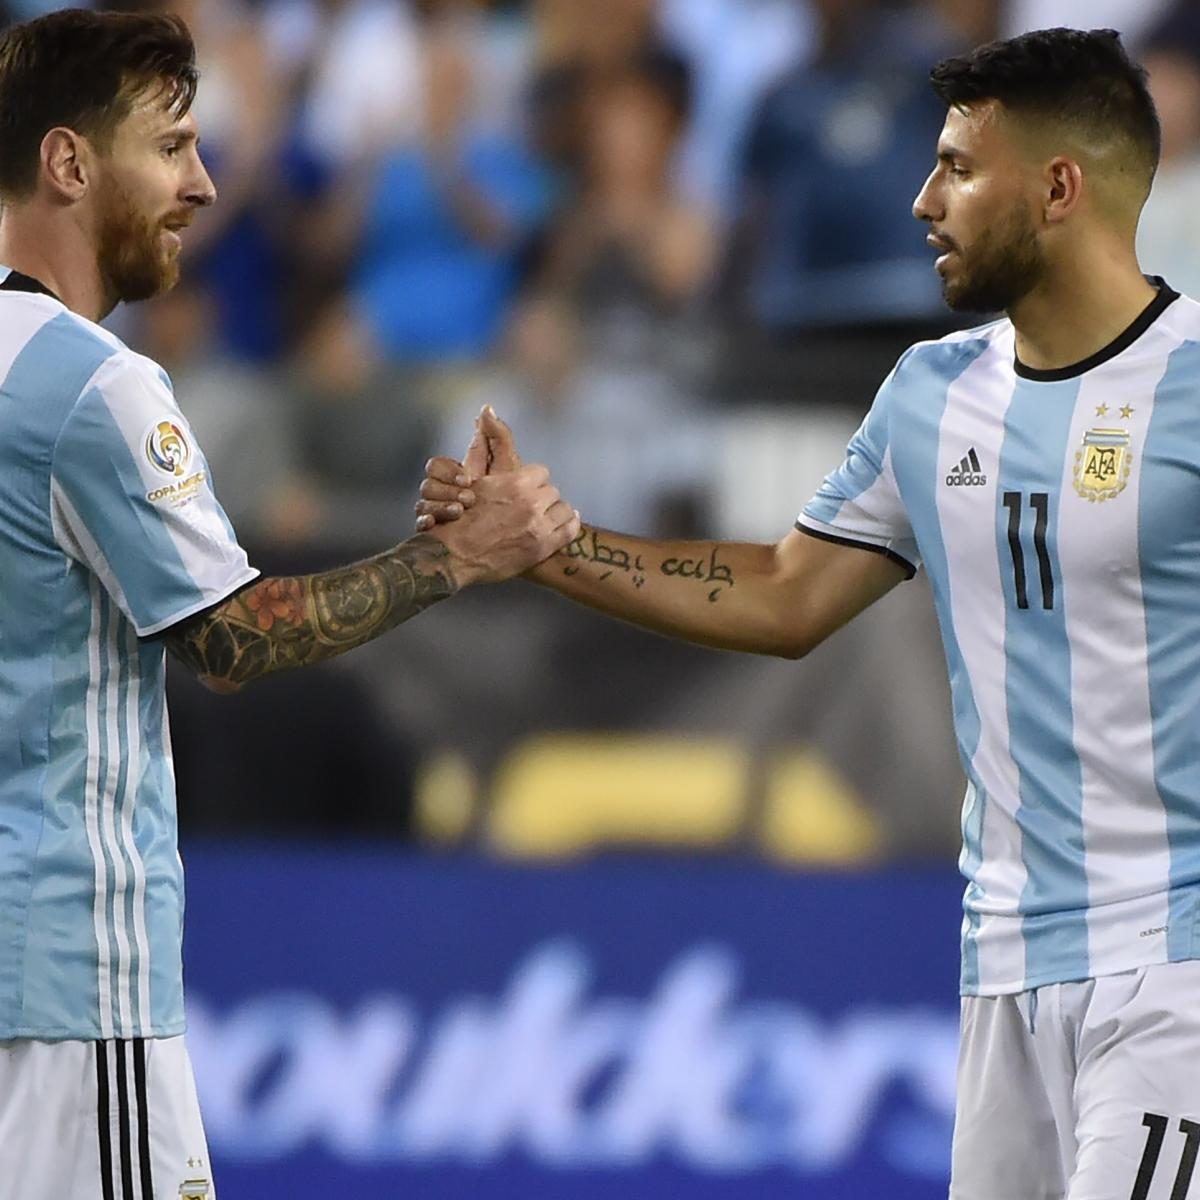 Lionel Messi to Manchester City Would Be 'Complicated,' Says Sergio Aguero